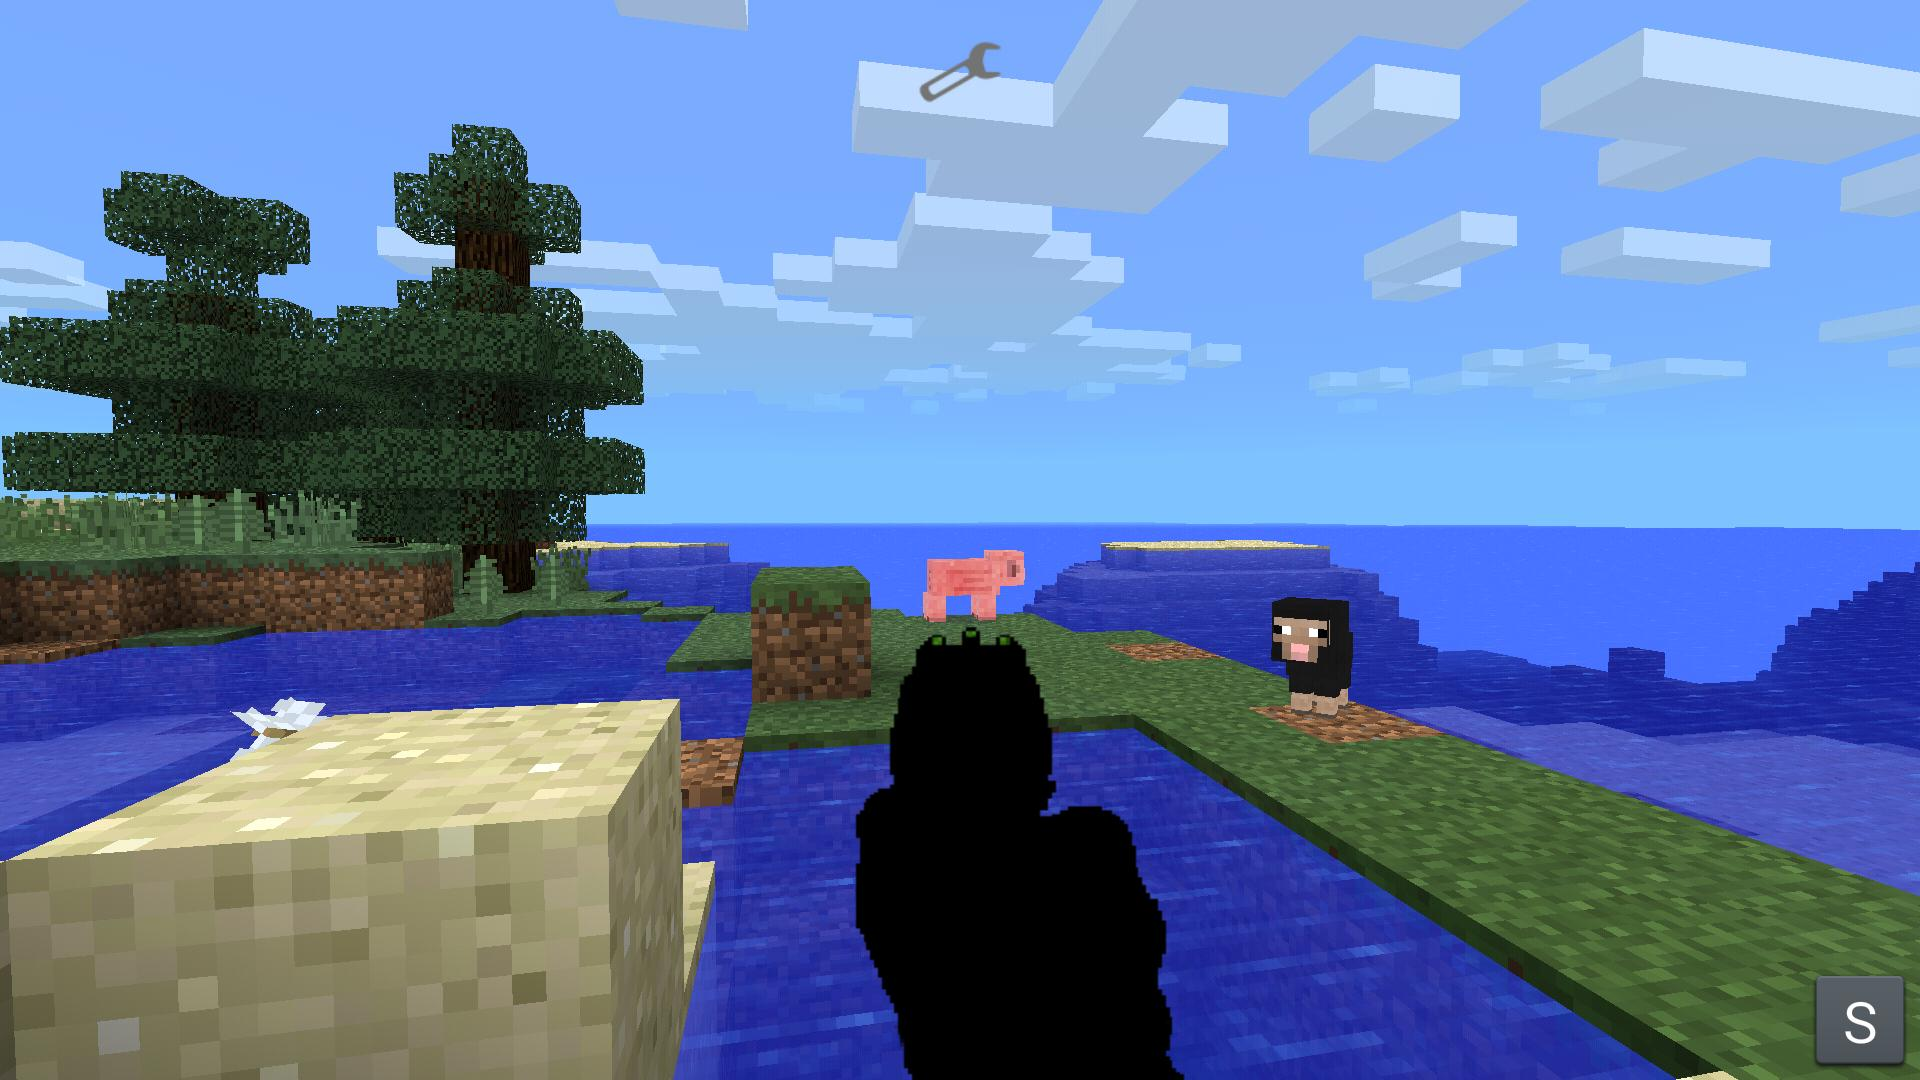 Call of Duty Weapons in Minecraft Mod